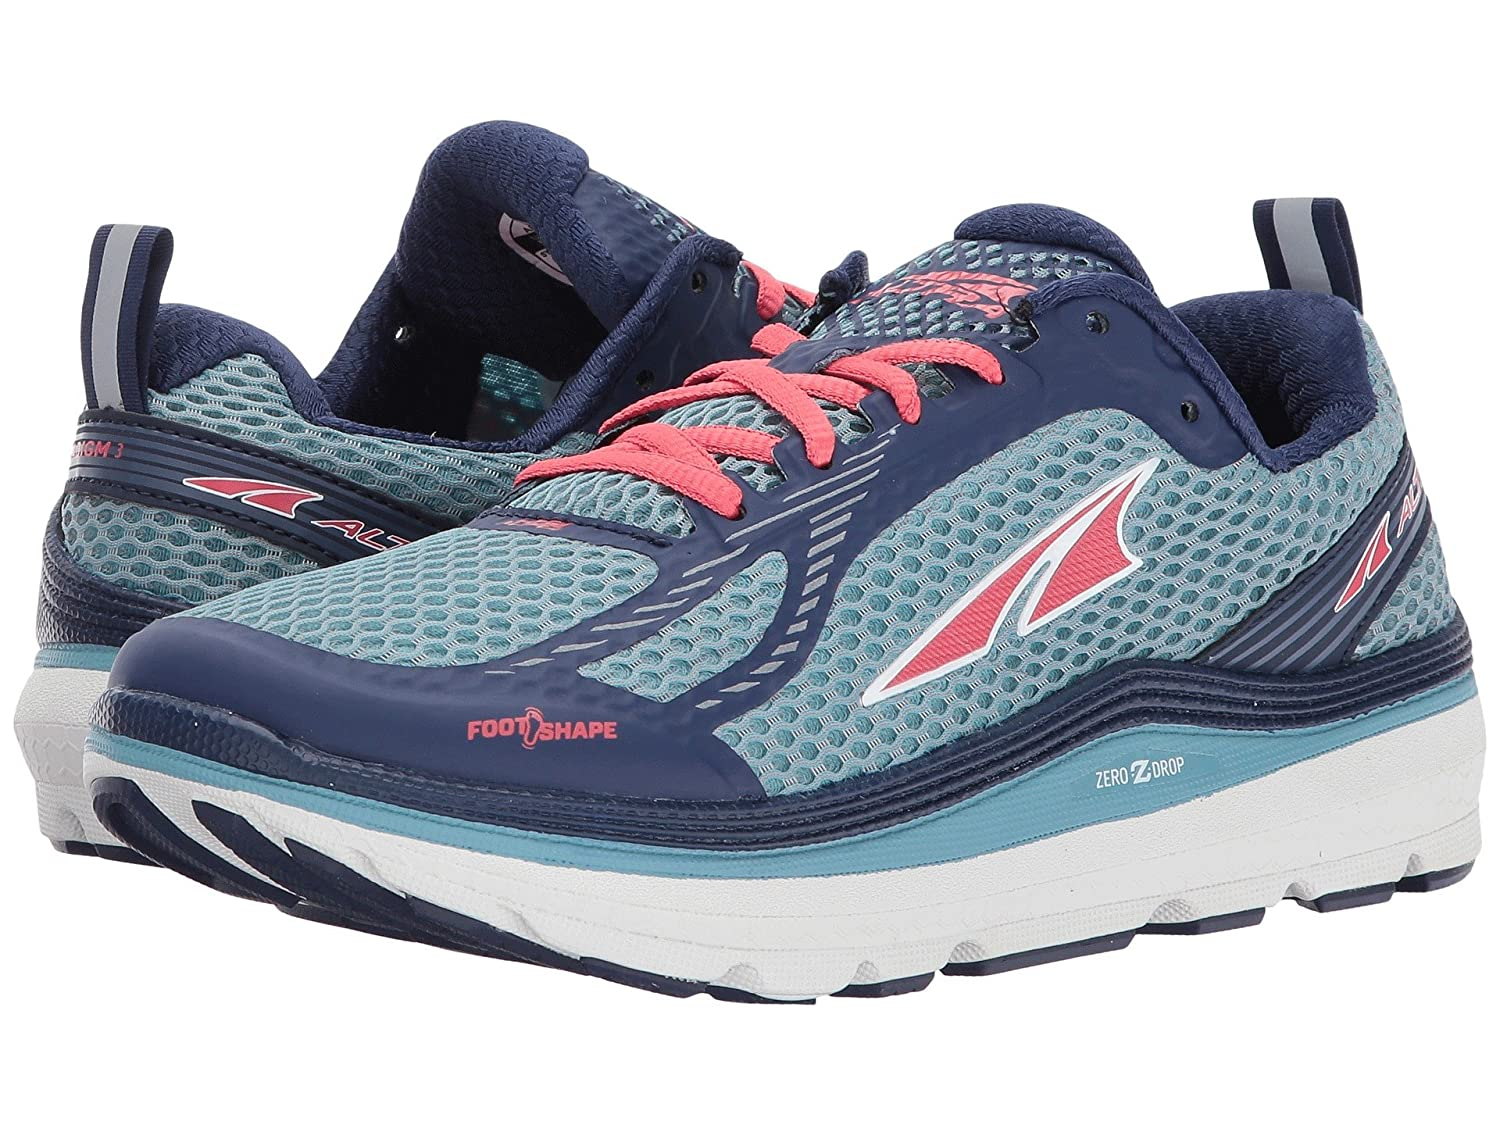 Altra Women's B(M) Paradigm 3 B01N9K467T 7 B(M) Women's US|Light Blue 3226cc